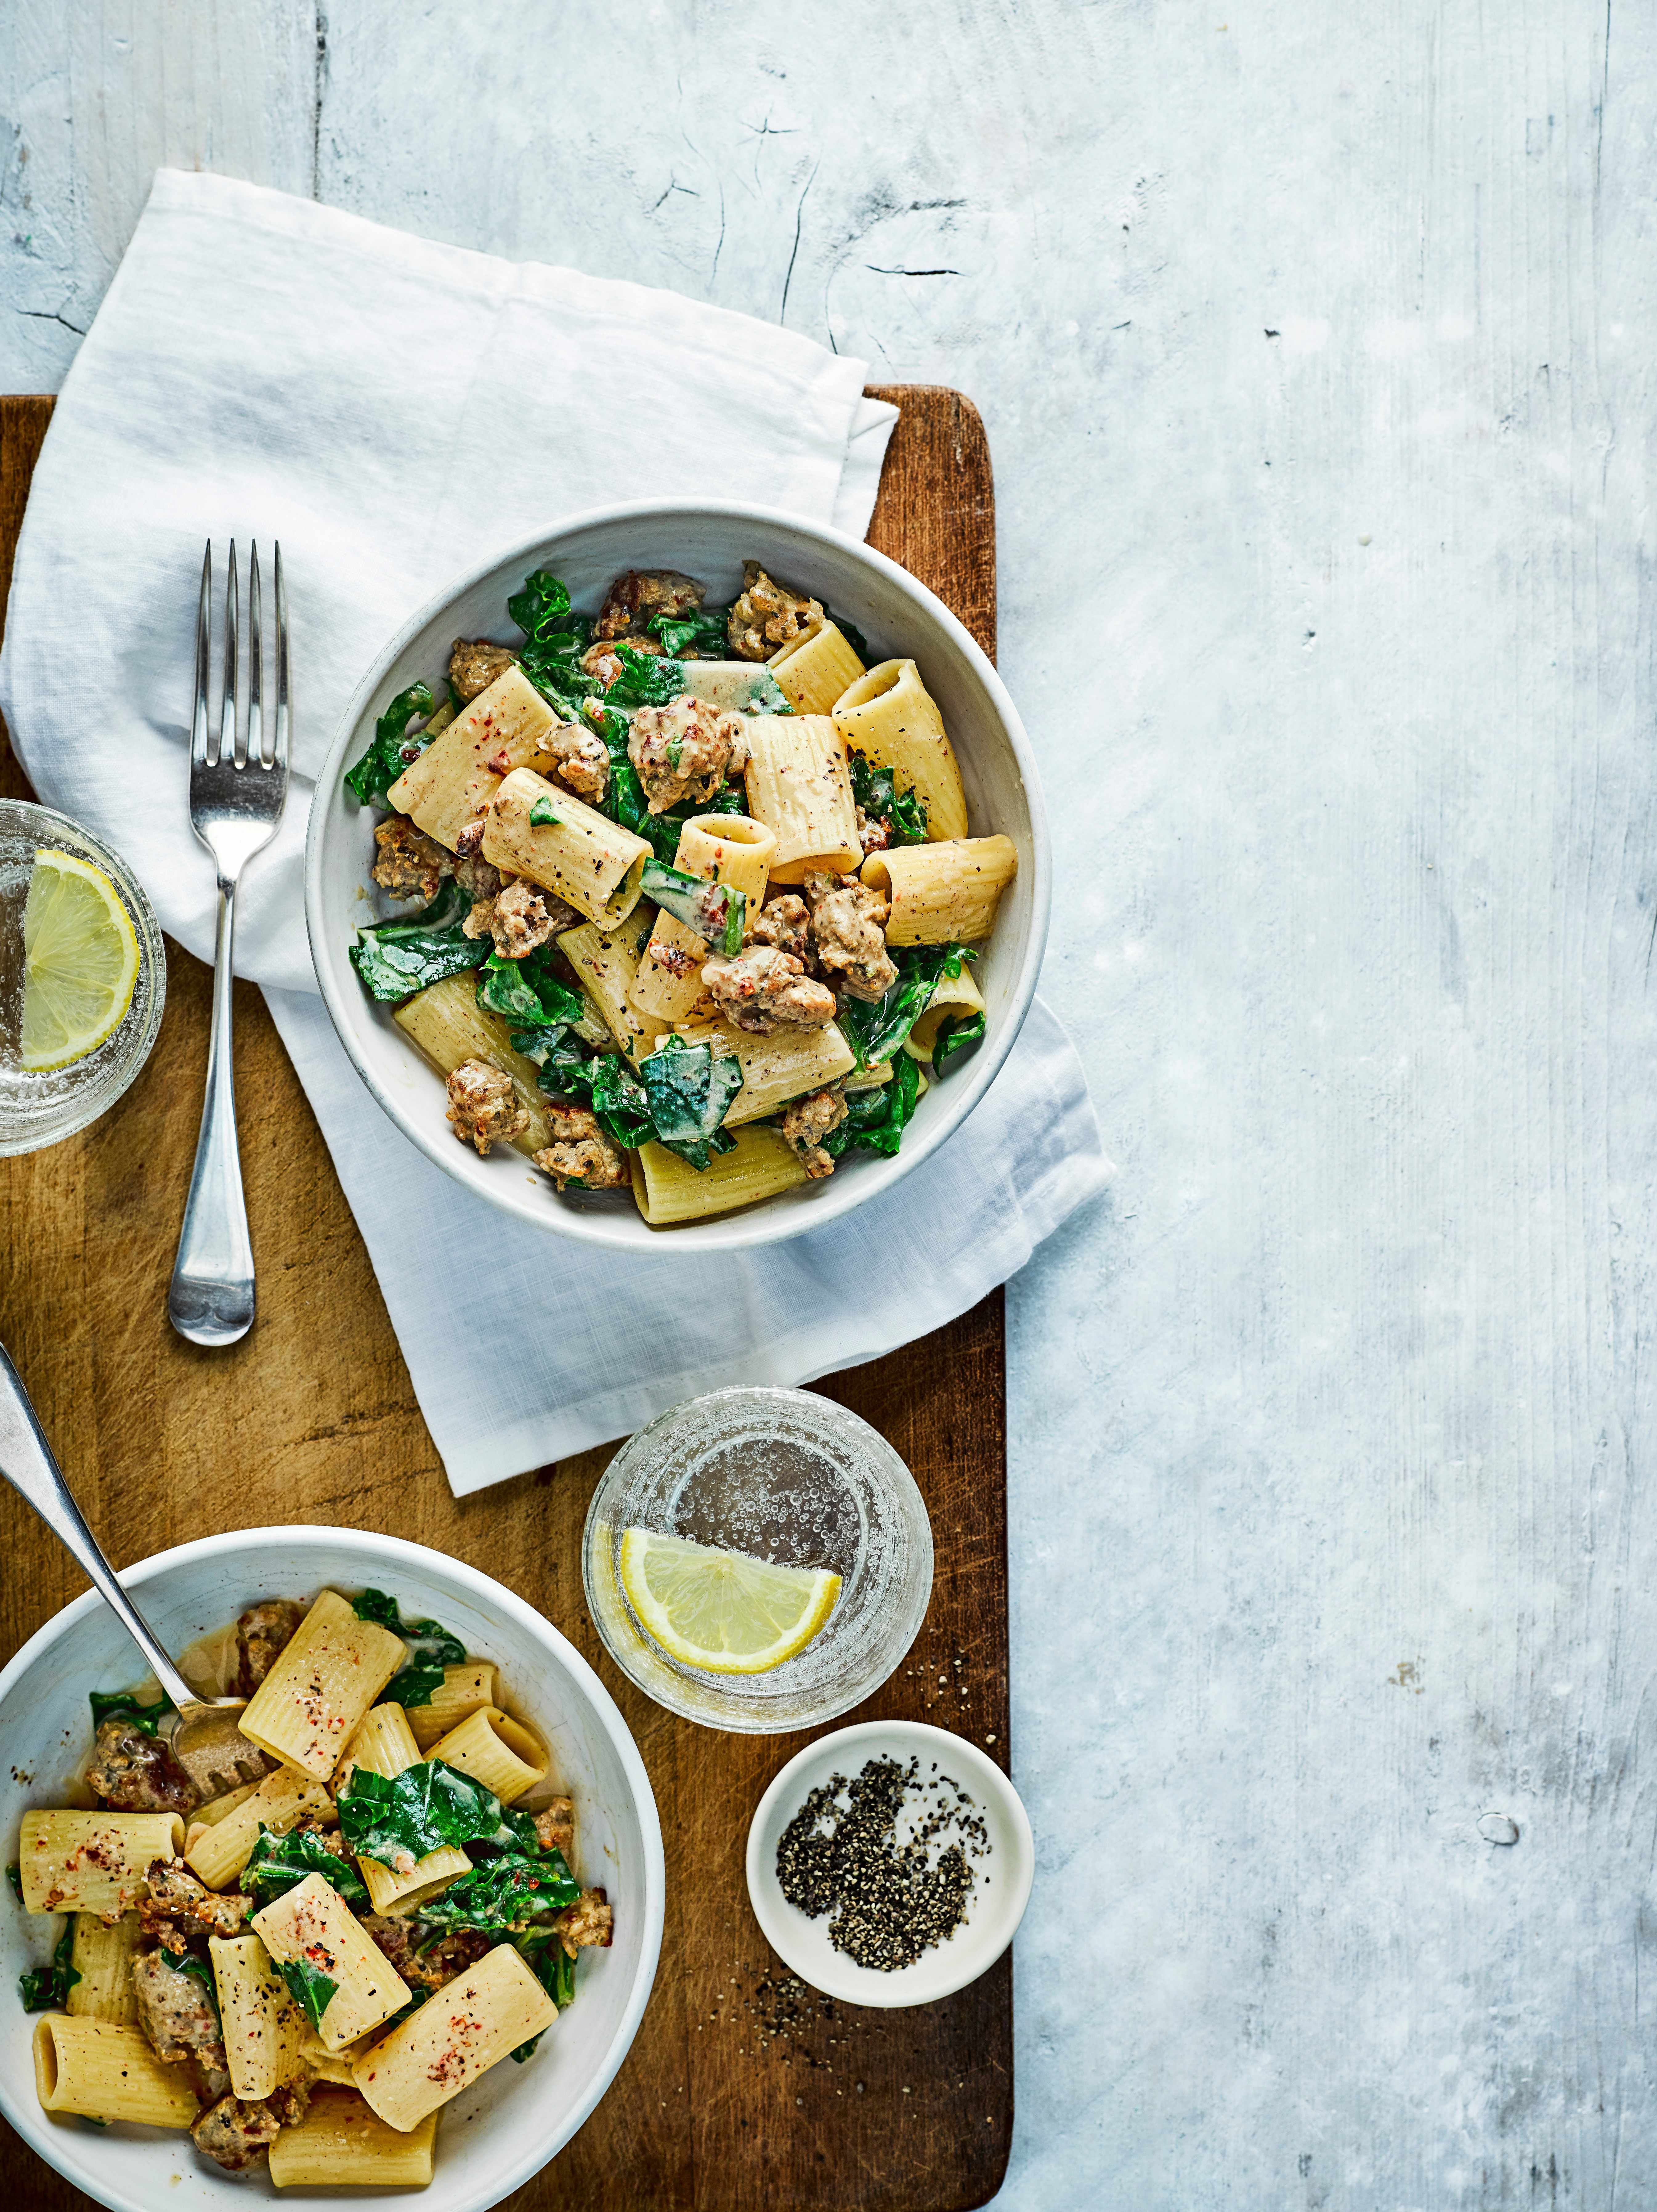 Sausage Pasta Recipe With Kale and Mustard